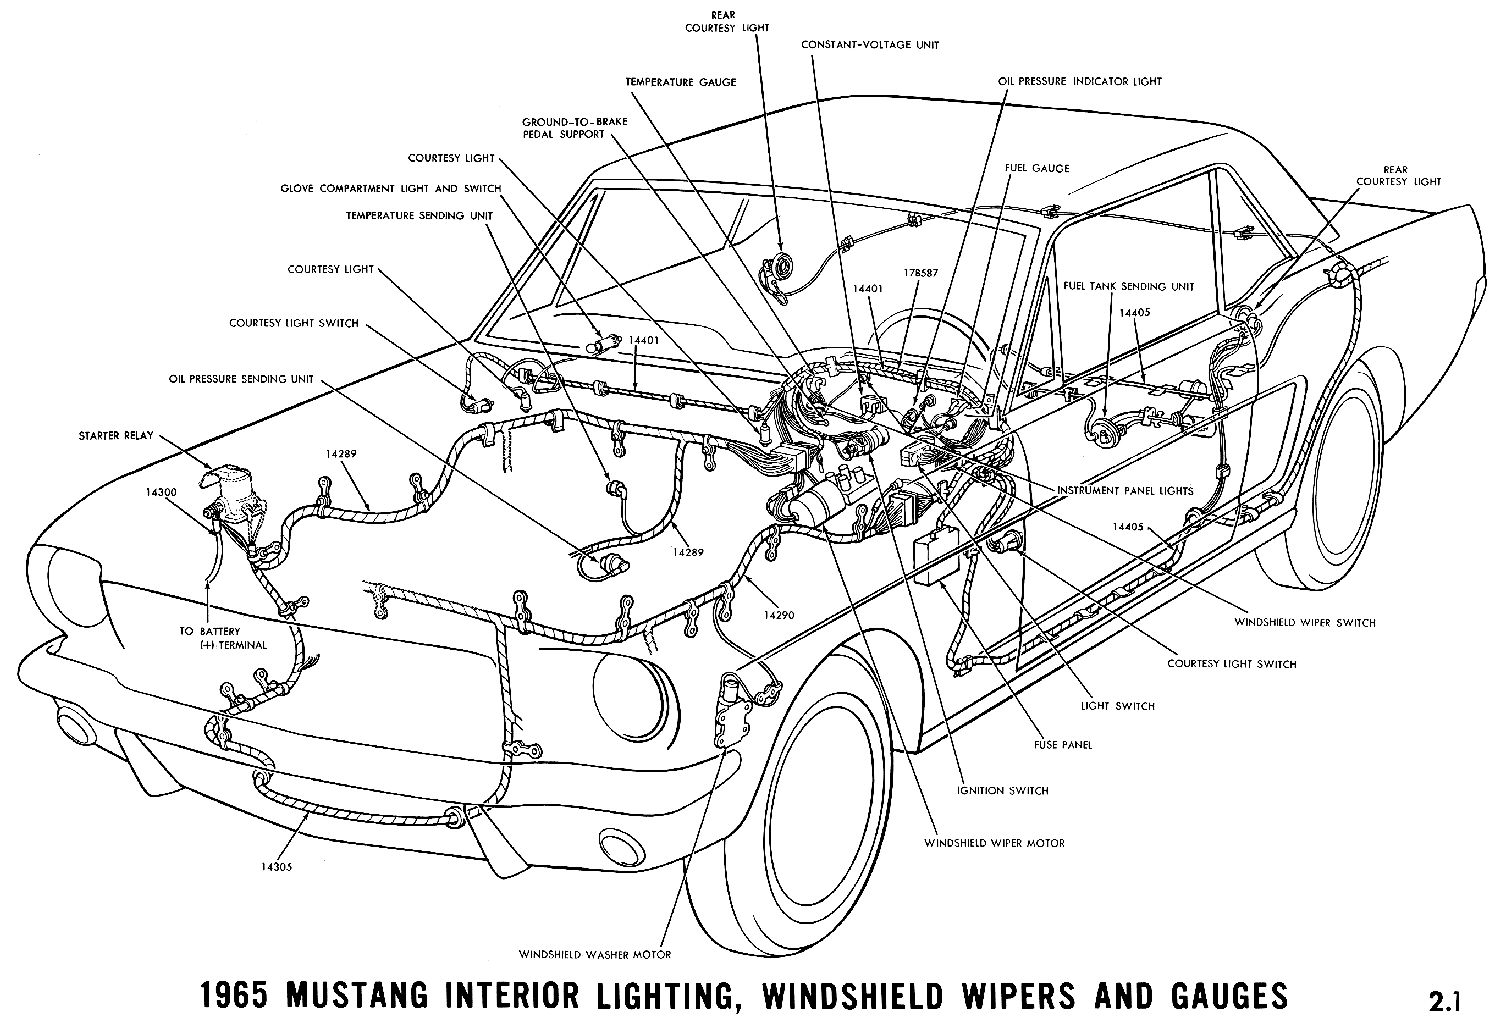 1965f 1965 mustang wiring diagrams average joe restoration 1965 mustang alternator wiring diagram at aneh.co